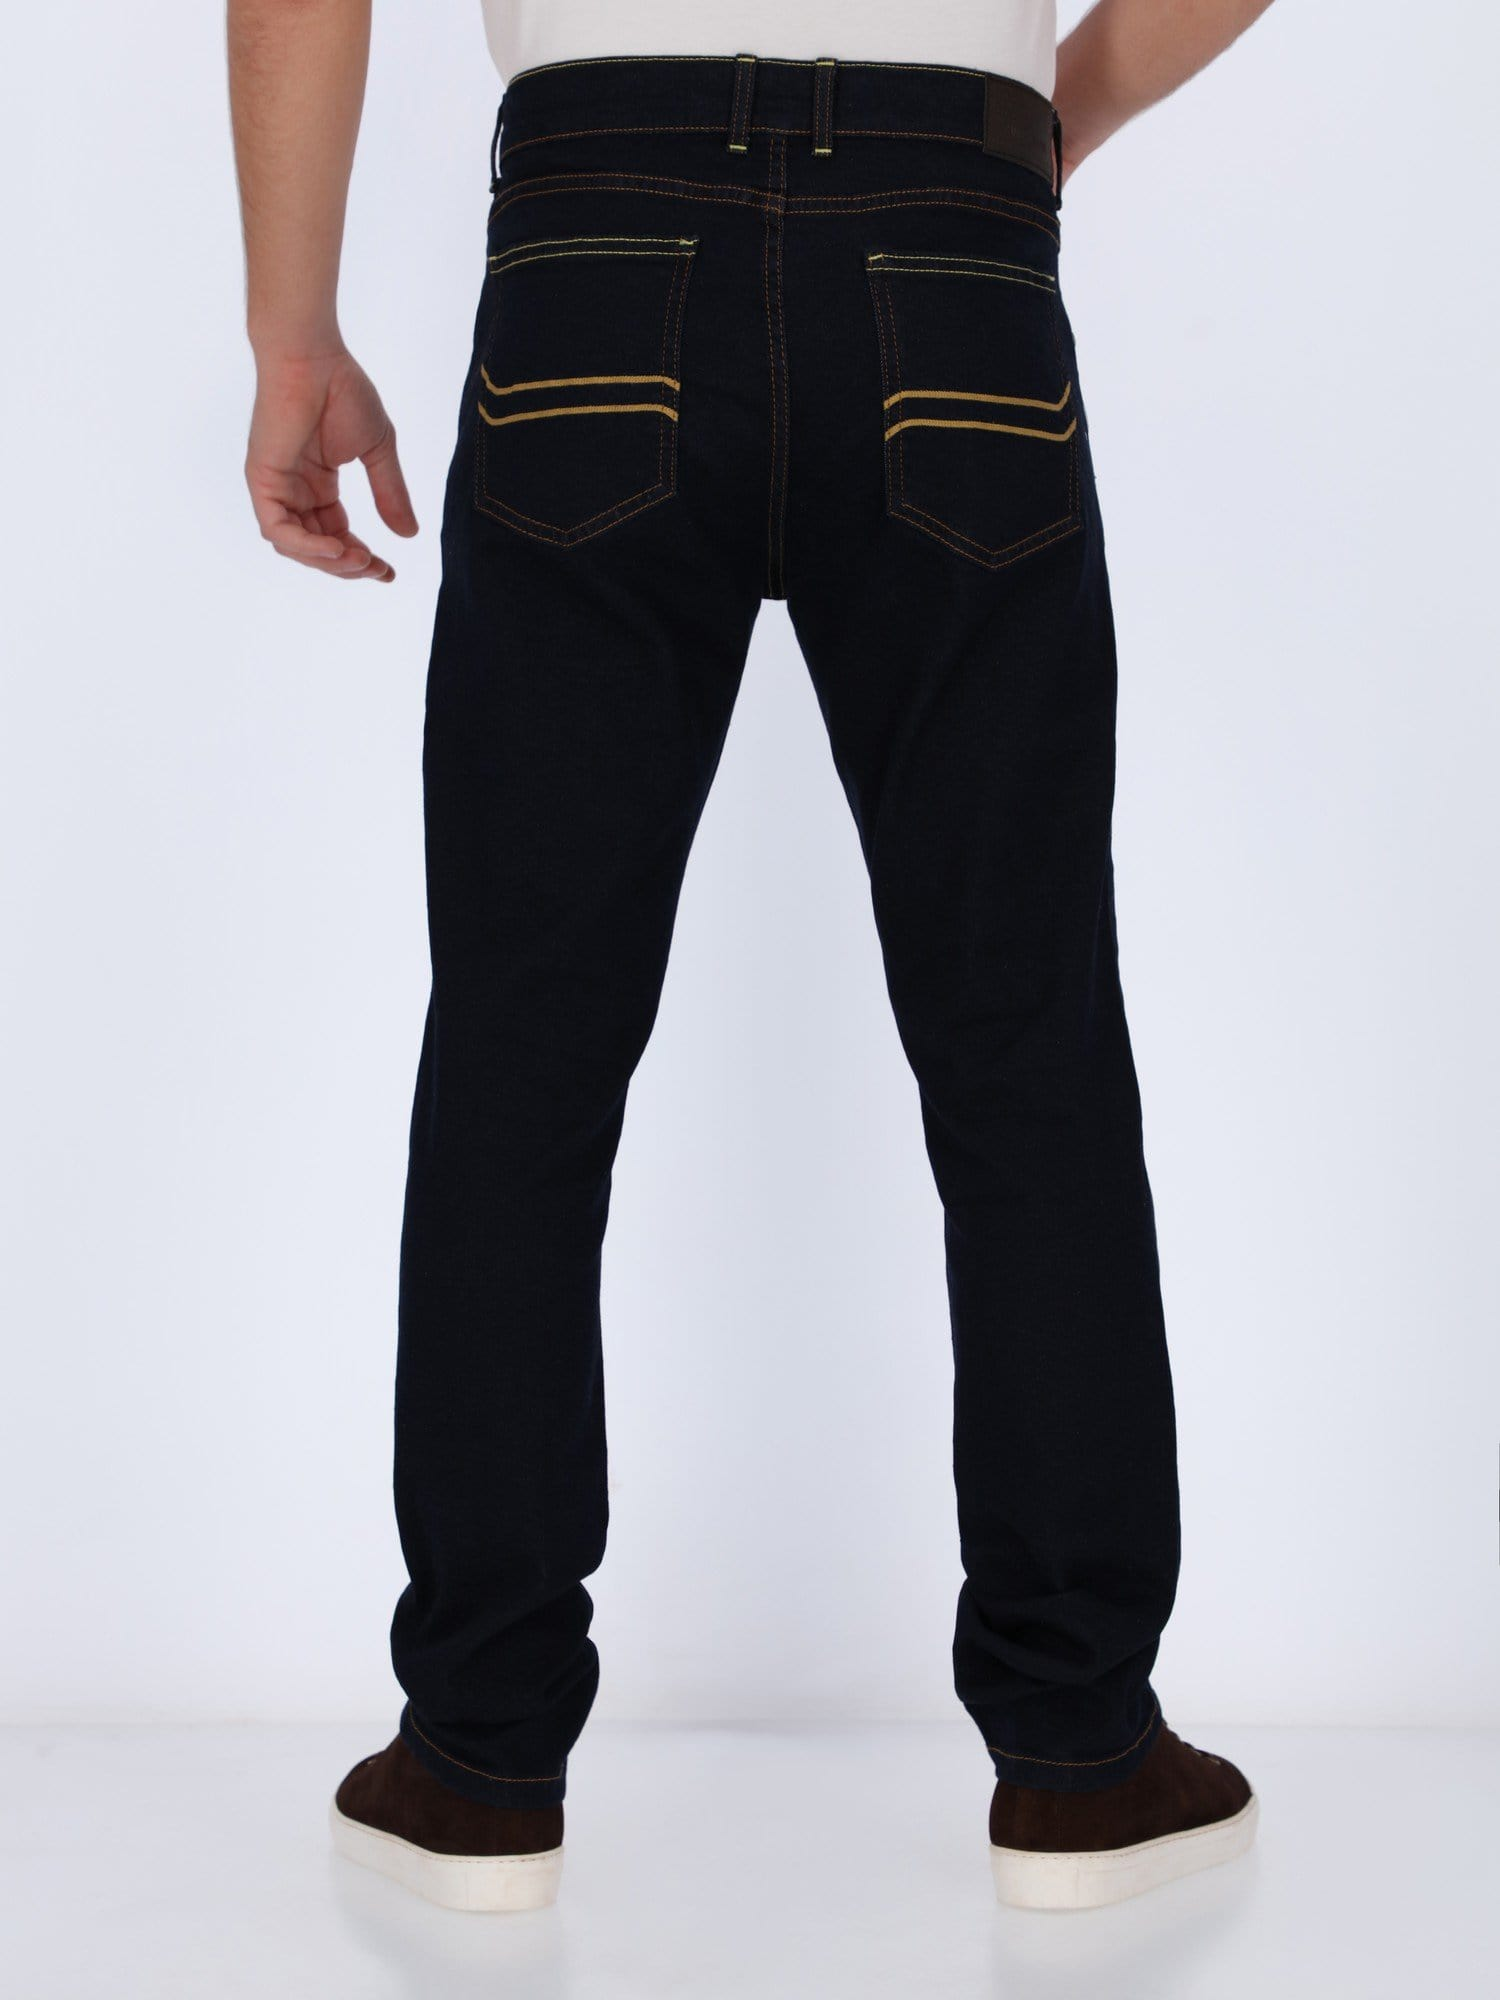 Daniel Hechter Pants & Shorts Jeans Pants with Stitched Back Pockets